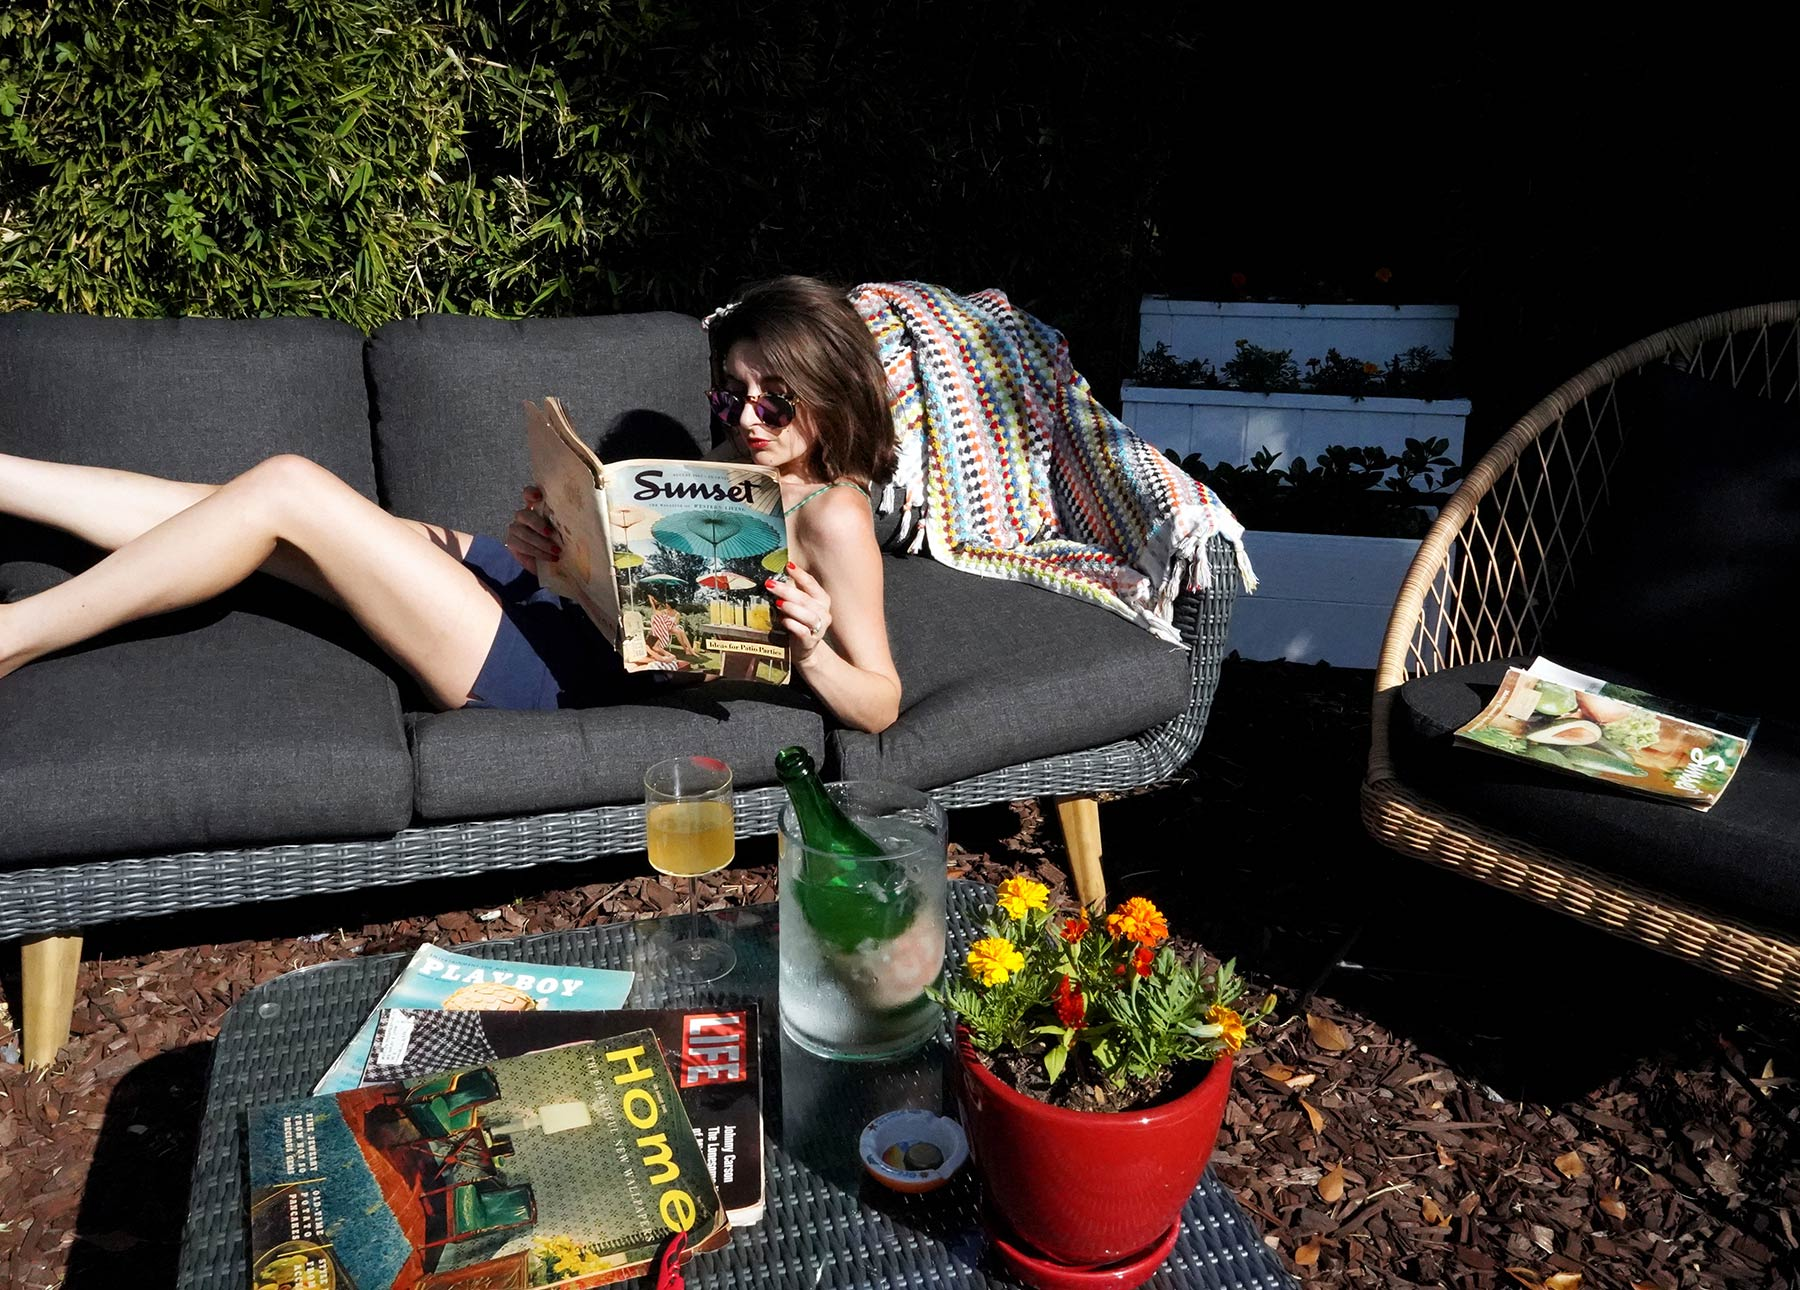 Marissa A. Ross reads a magazine on her Article Ora sofa after a day of outdoor entertaining.